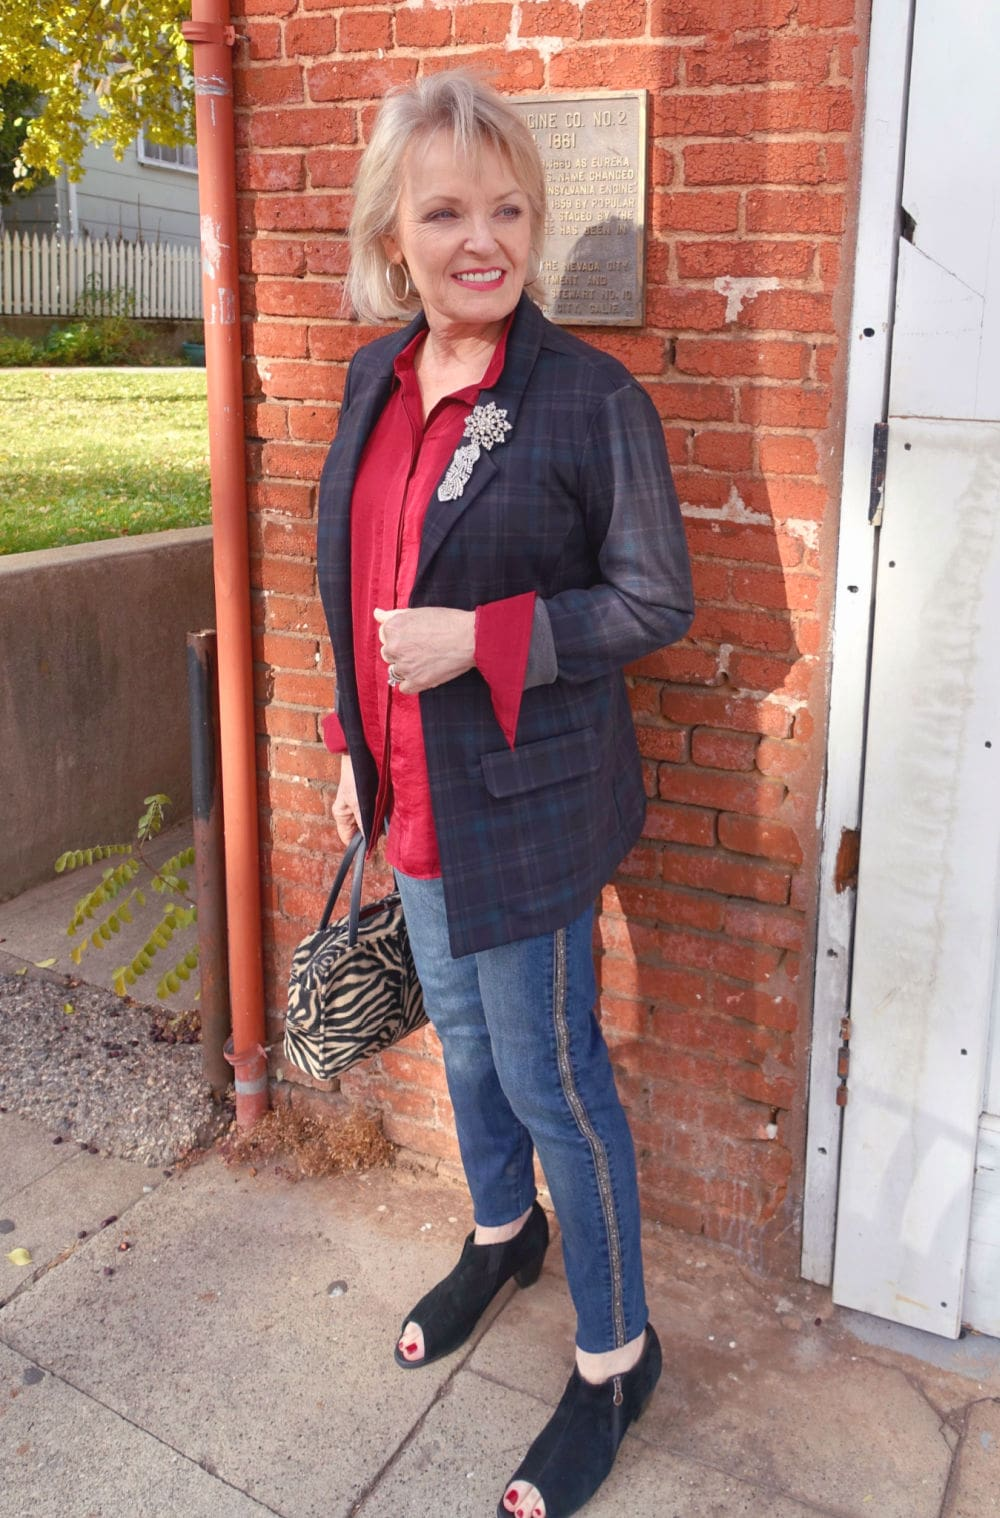 fashion blogger jennifer of a well styled life wearing red shirt and plaid blazer